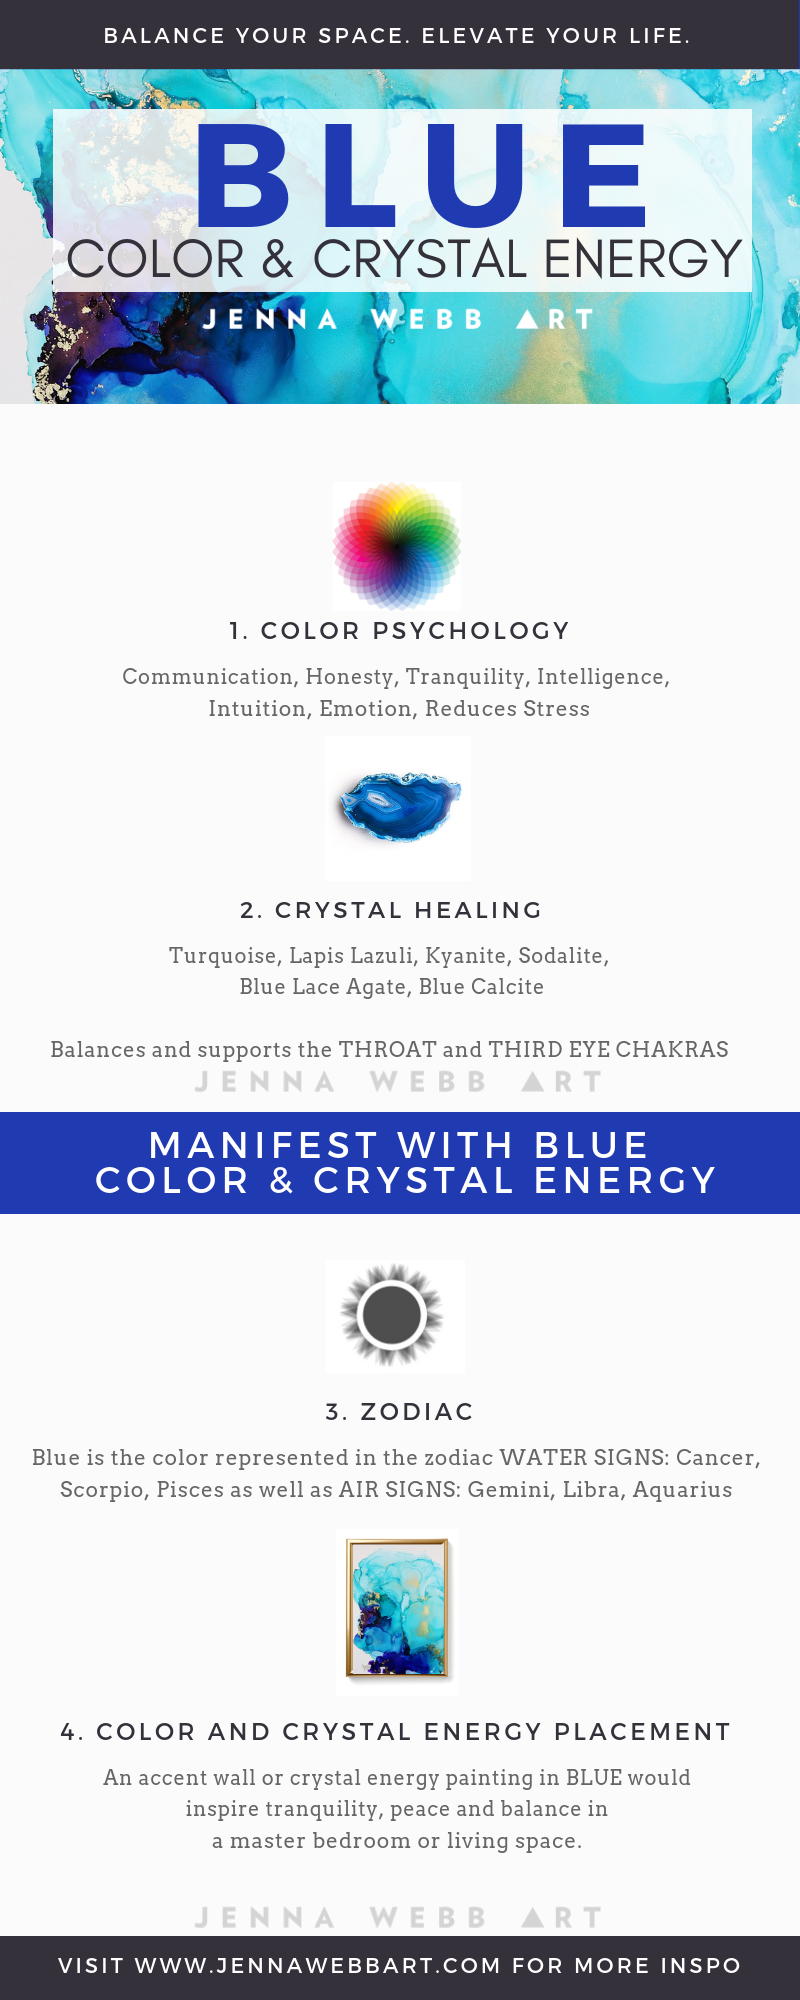 blue color and crystal energy info-graphic Jenna Webb Art (2).png